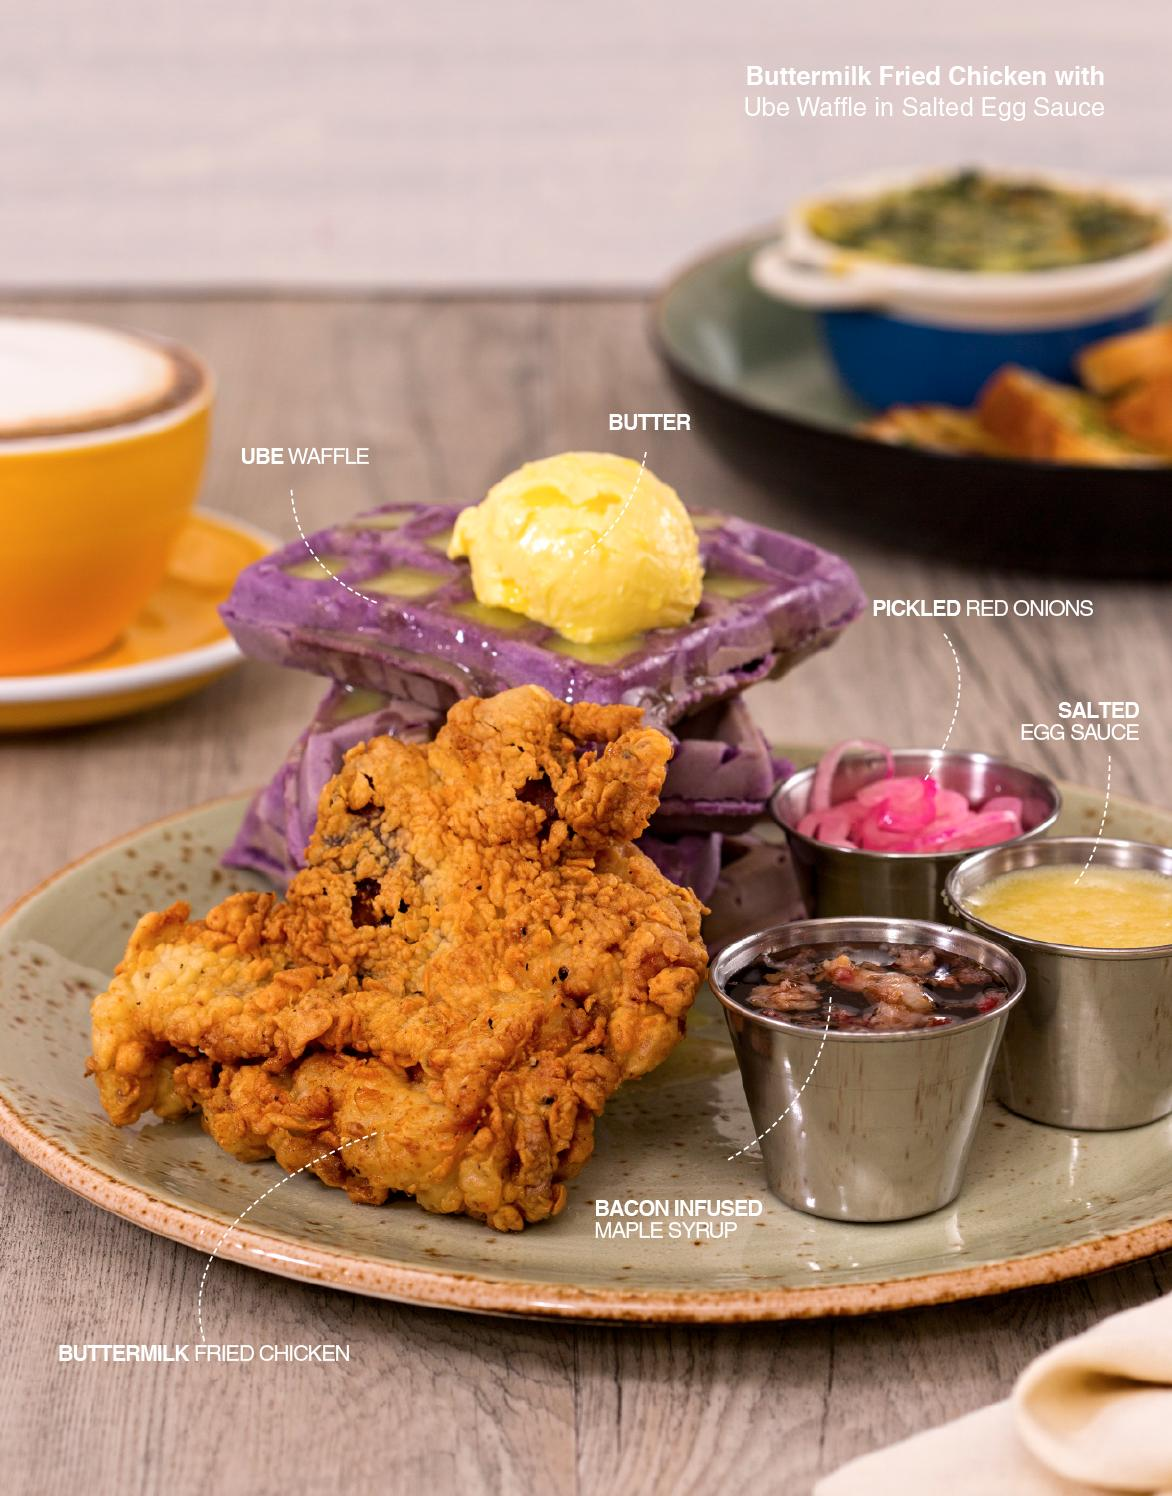 Buttermilk Fried Chicken with Ube Waffle in Salted Egg Sauce